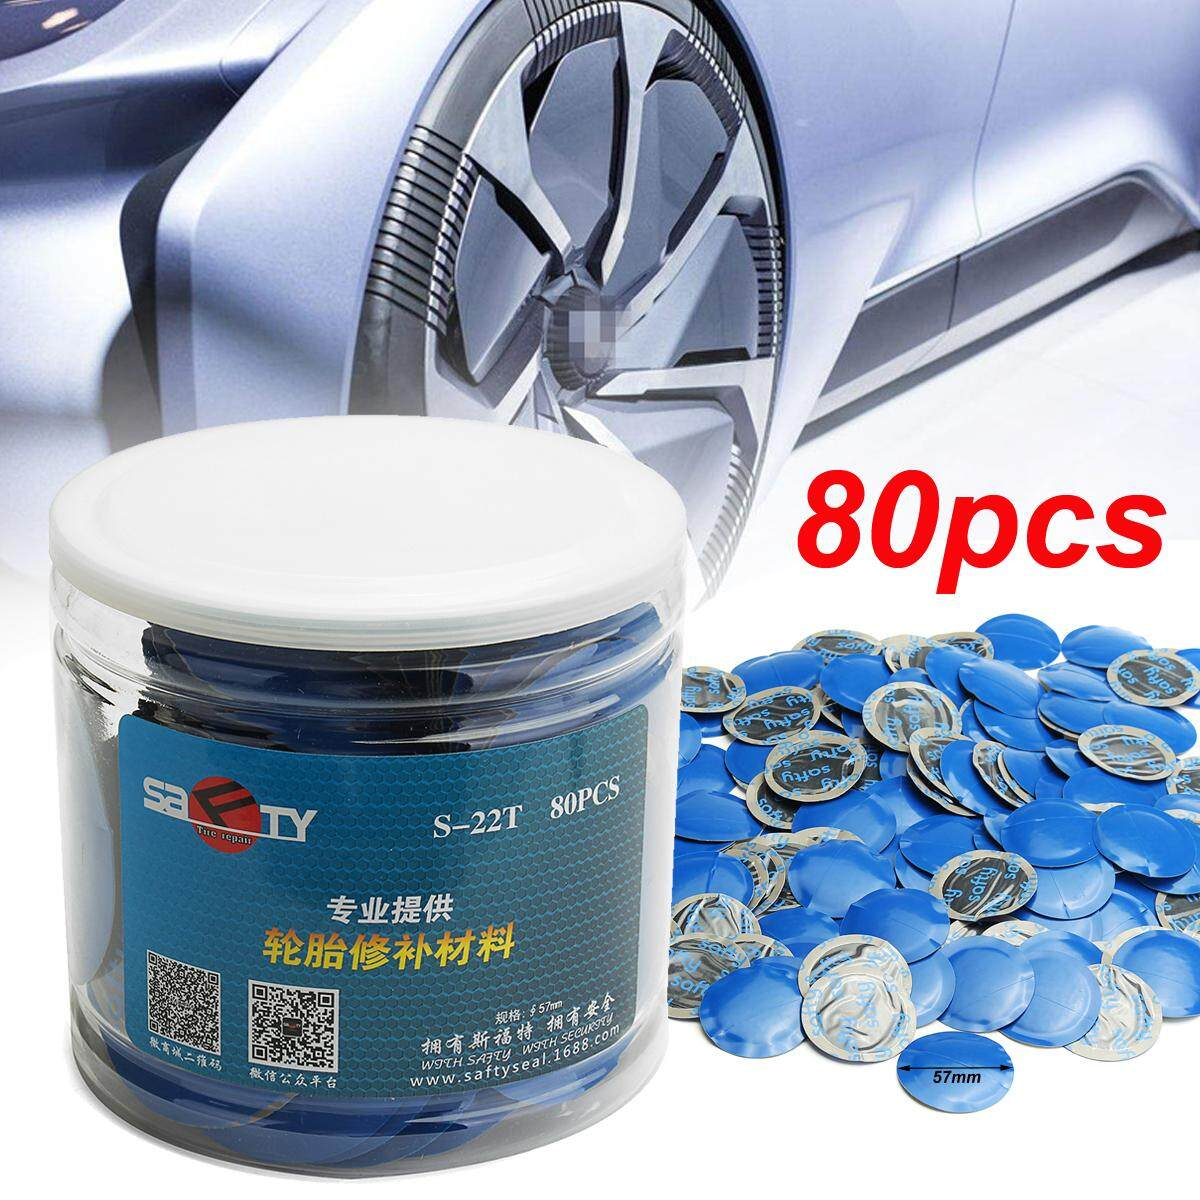 Universal 80pcs 57mm Natural Rubber Wired Tyre Puncture Repair Mushroom Patch By Freebang.